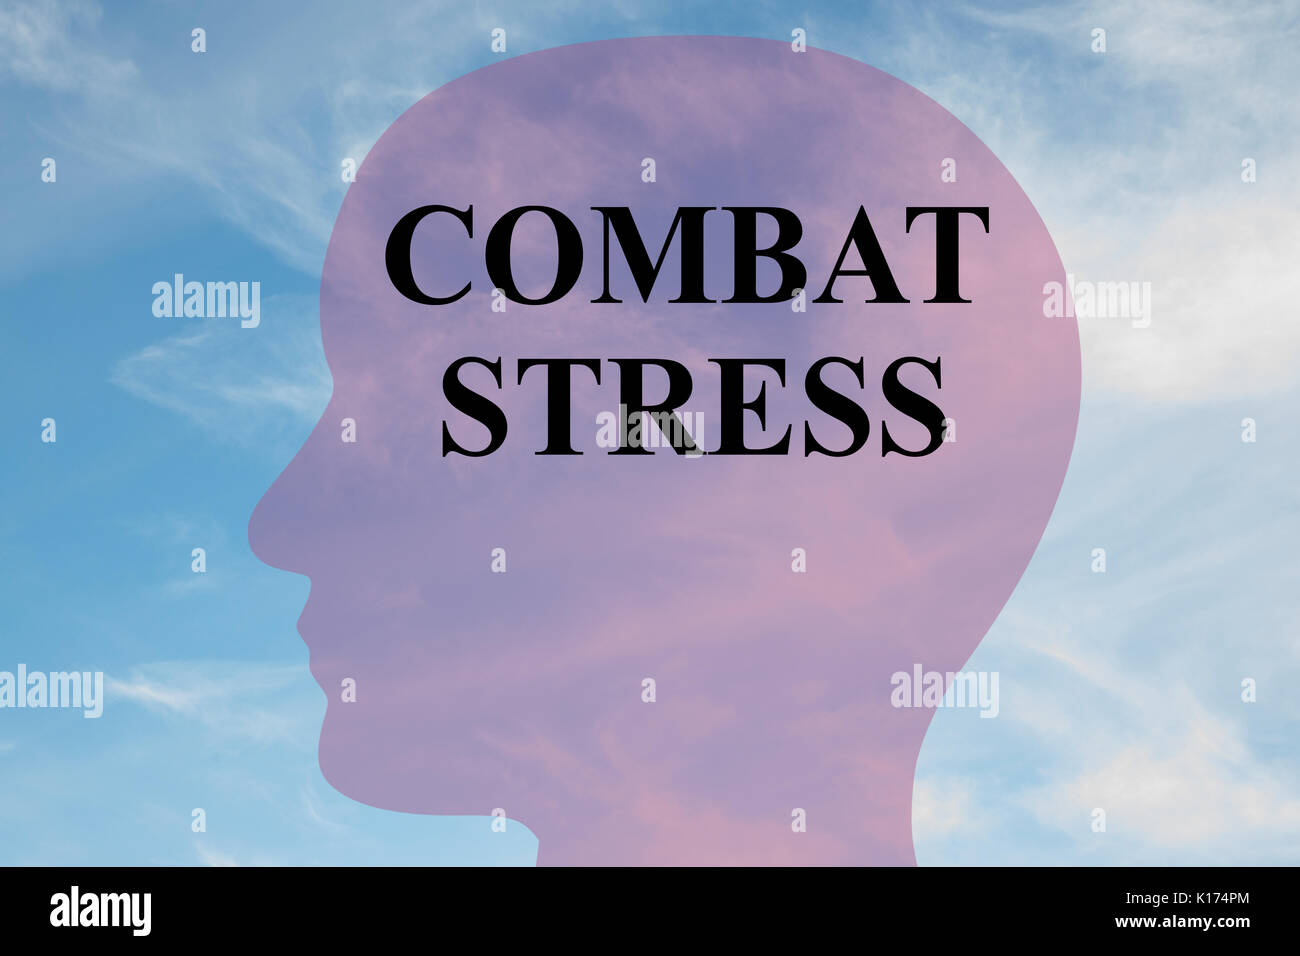 Render illustration of 'COMBAT STRESS' script on head silhouette, with cloudy sky as a background. - Stock Image